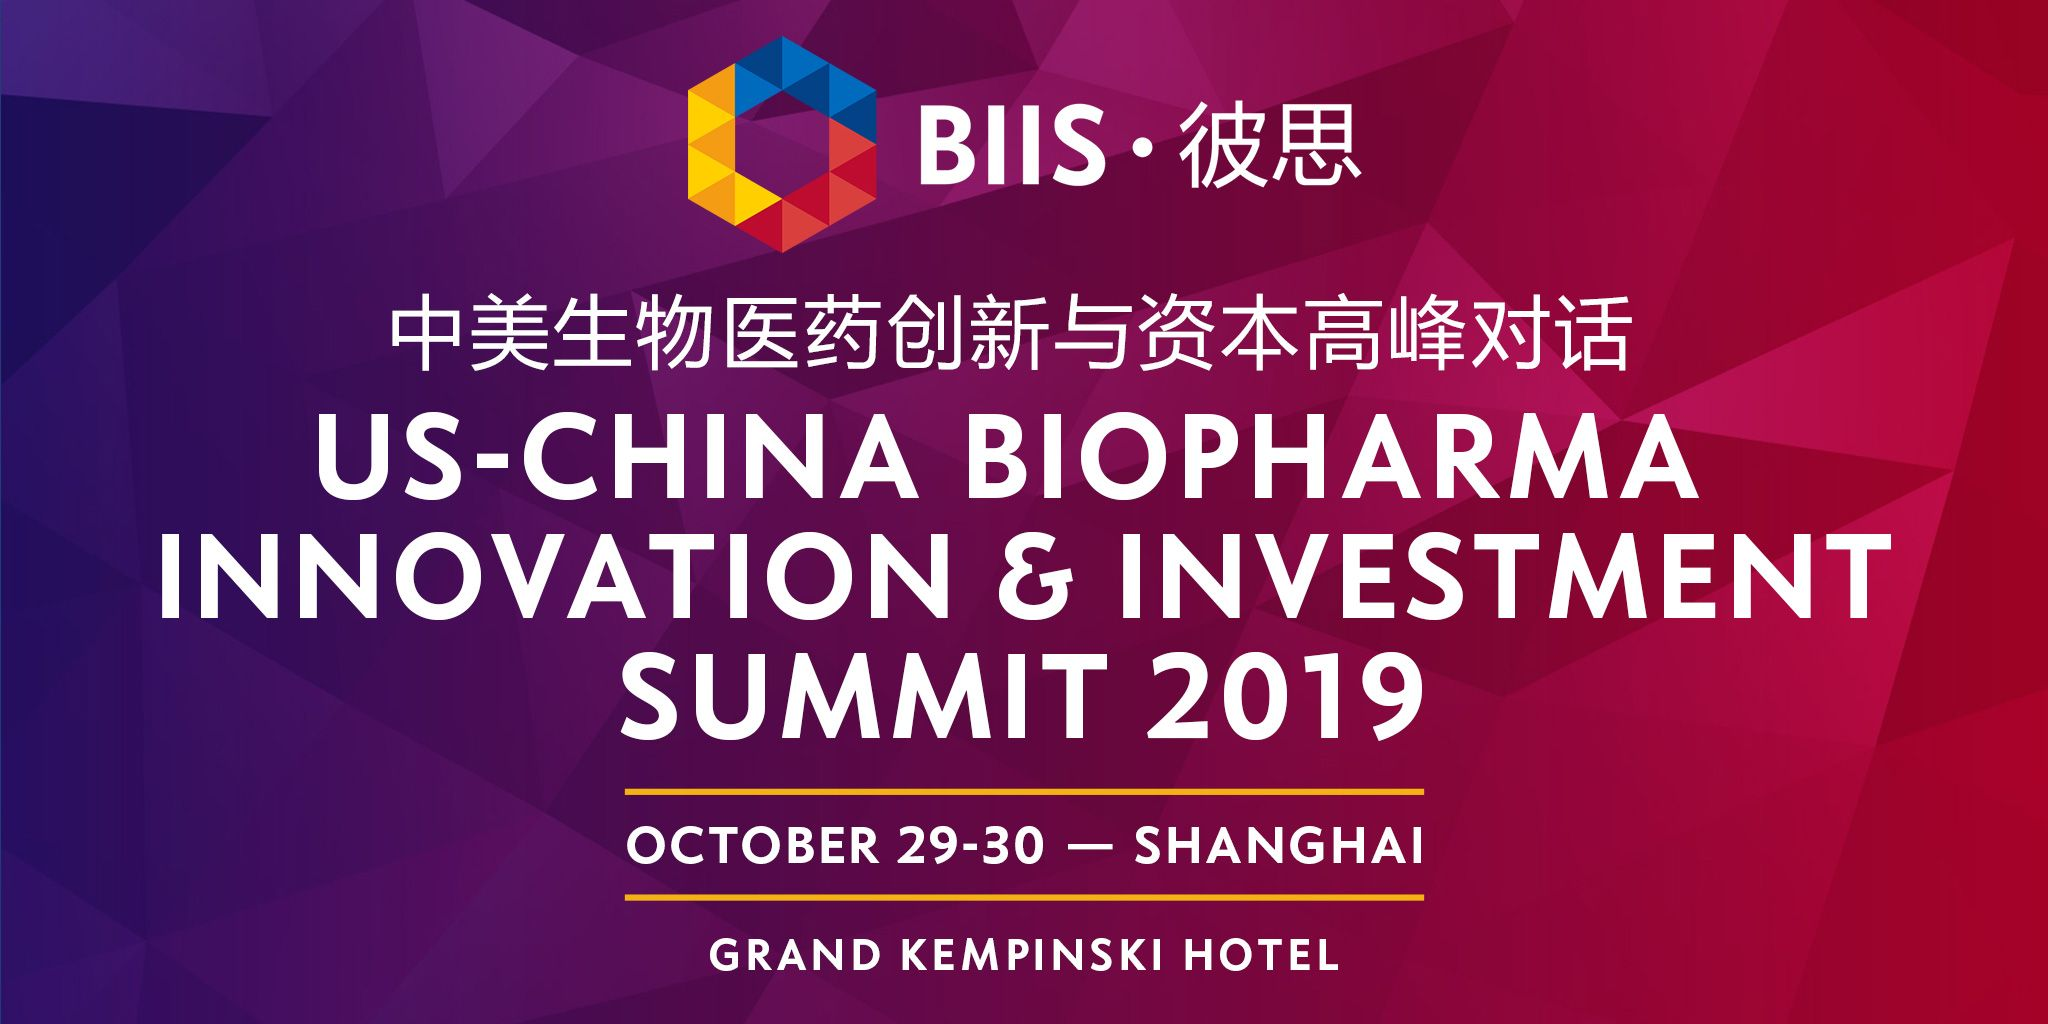 US-CHINA BIOPHARMA  INNOVATION & INVESTMENT SUMMIT 2019 - Grand Kempinski Hotel Shanghai, Lujiazui Ring Road, Lujiazui, Pudong, China